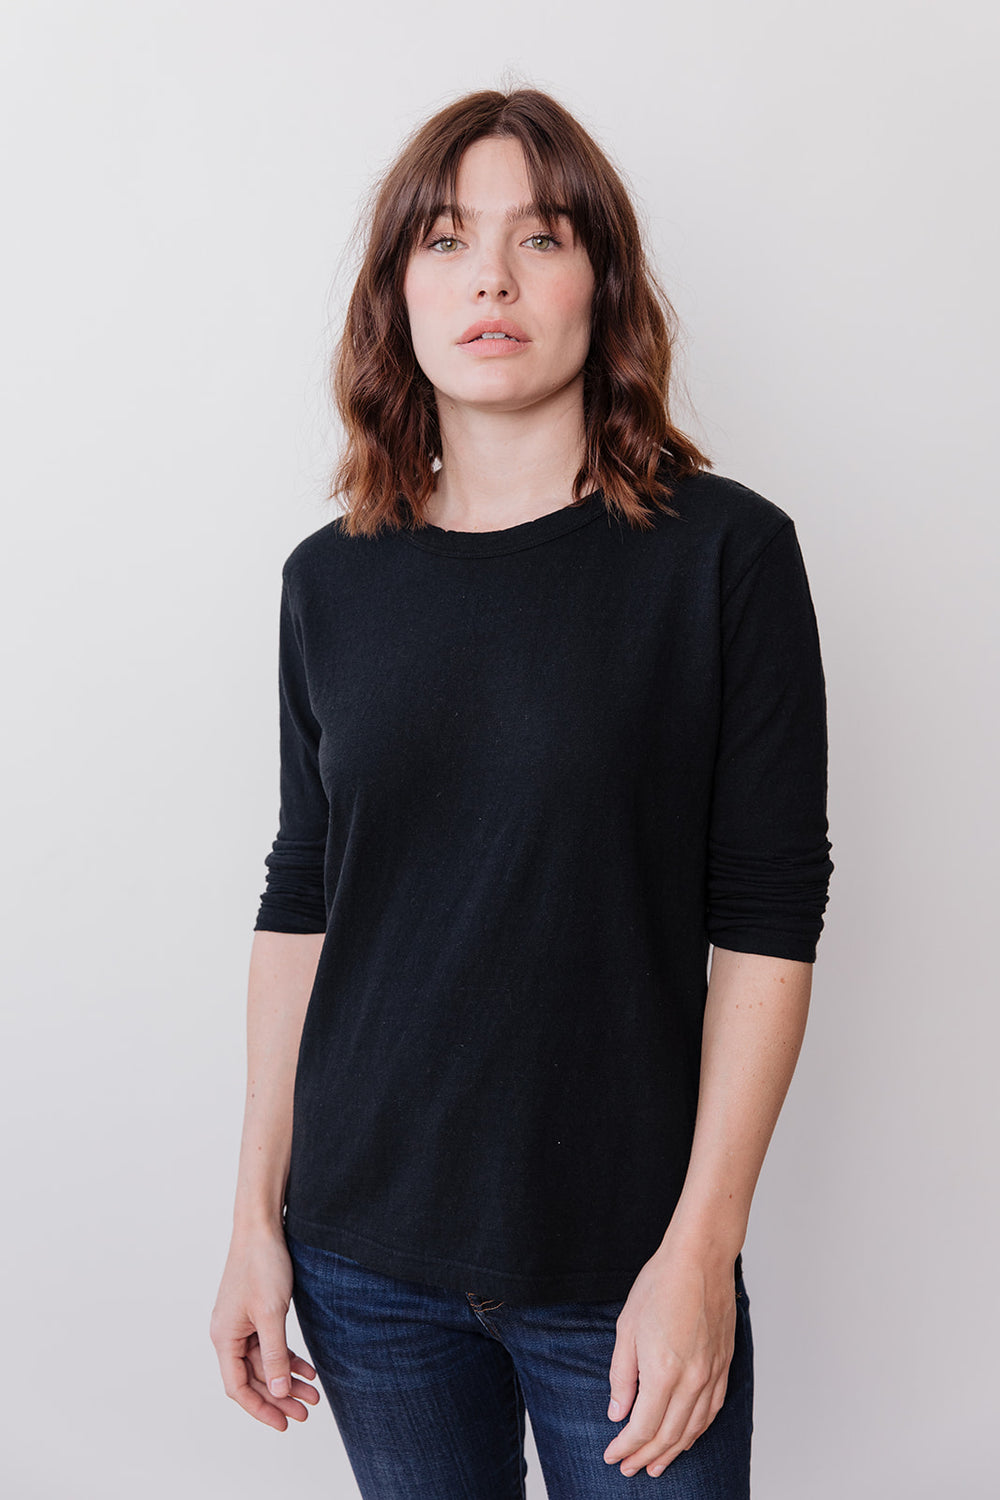 Long Sleeve Cotton T Shirt, Black